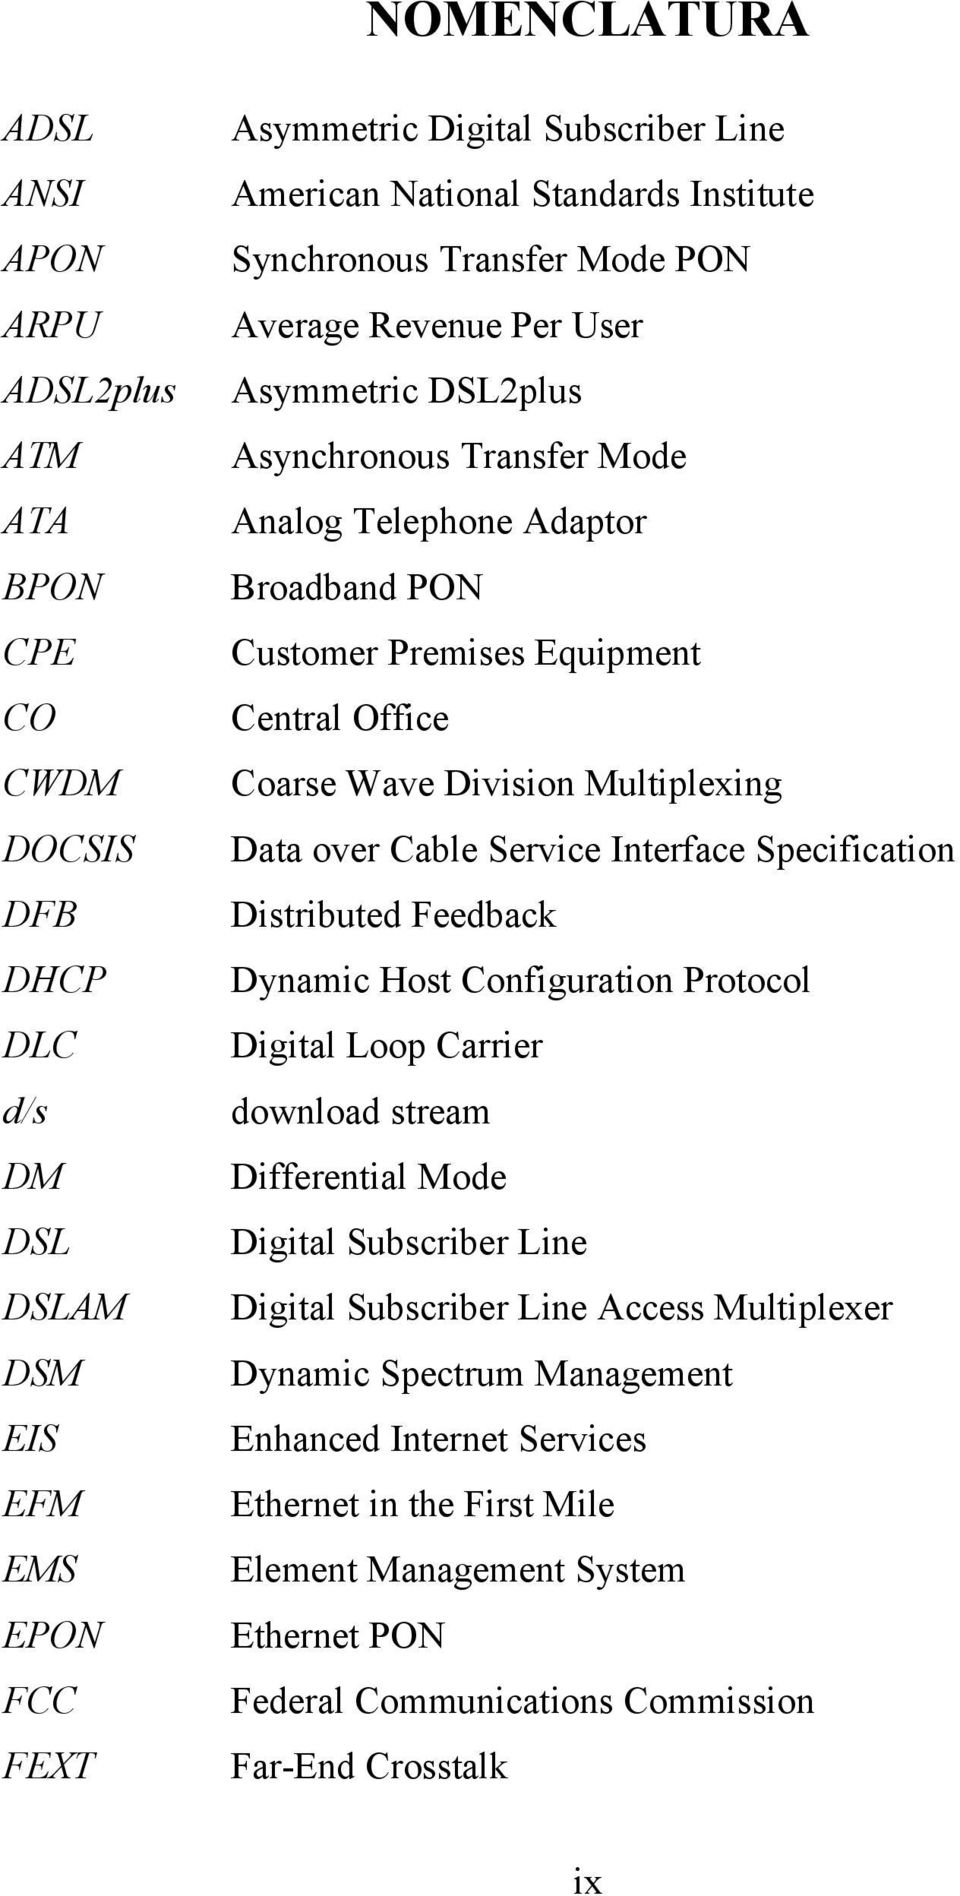 Interface Specification DFB Distributed Feedback DHCP Dynamic Host Configuration Protocol DLC Digital Loop Carrier d/s download stream DM Differential Mode DSL Digital Subscriber Line DSLAM Digital